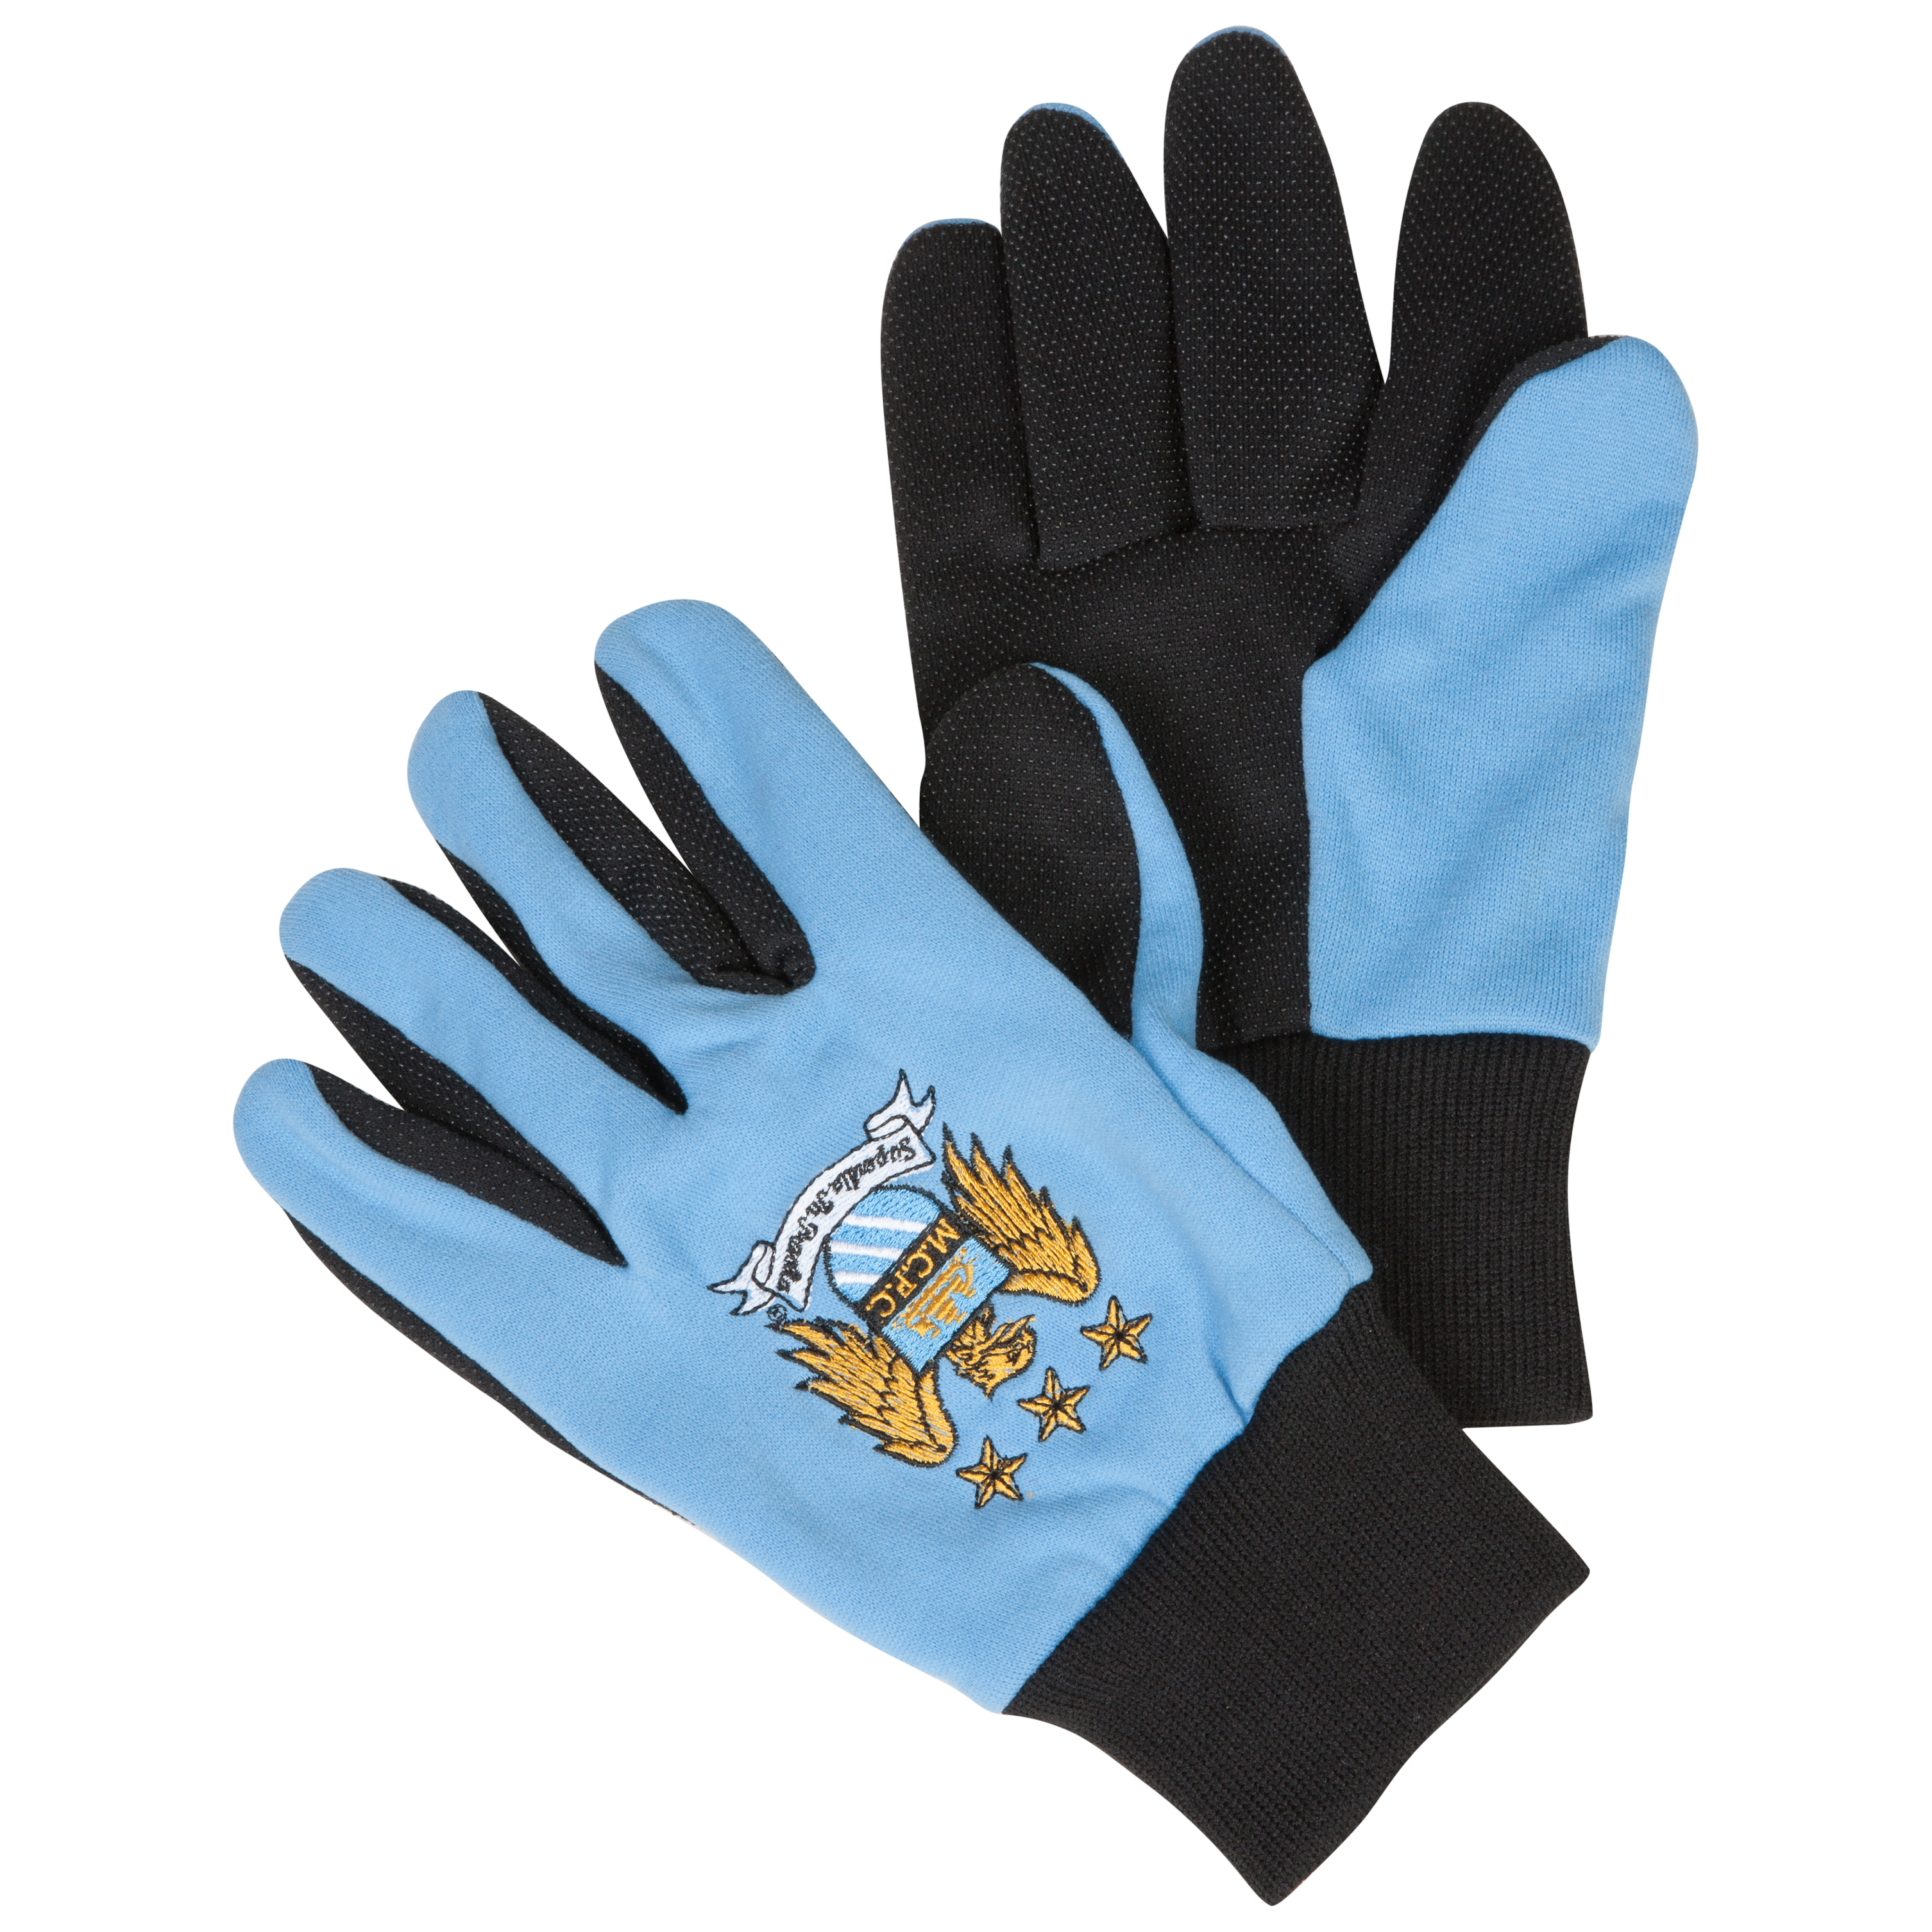 Manchester City Utility Gloves